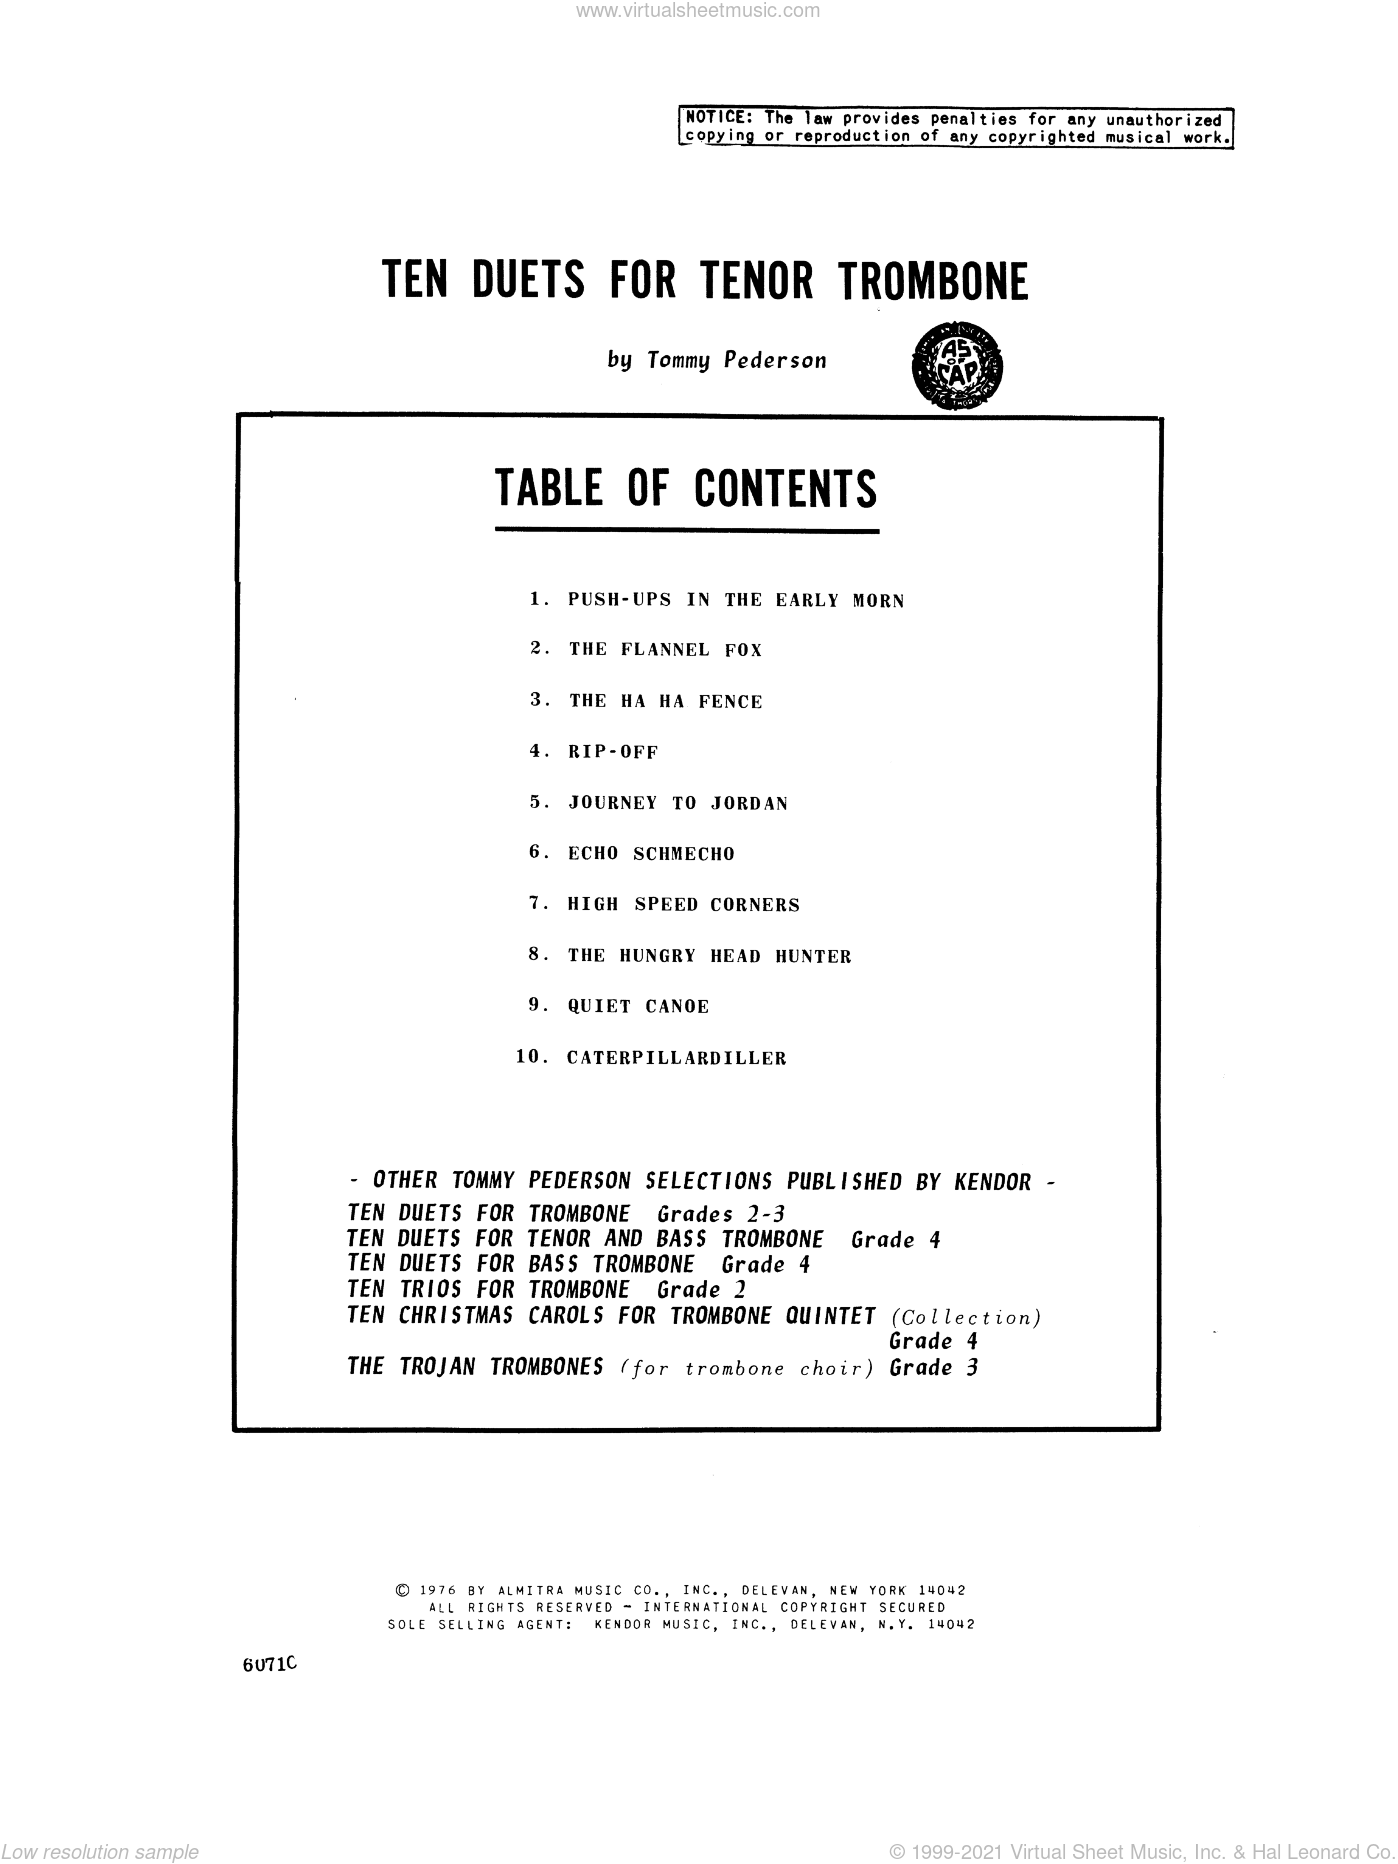 Ten Duets For Tenor Trombone sheet music for two trombones by Pederson. Score Image Preview.